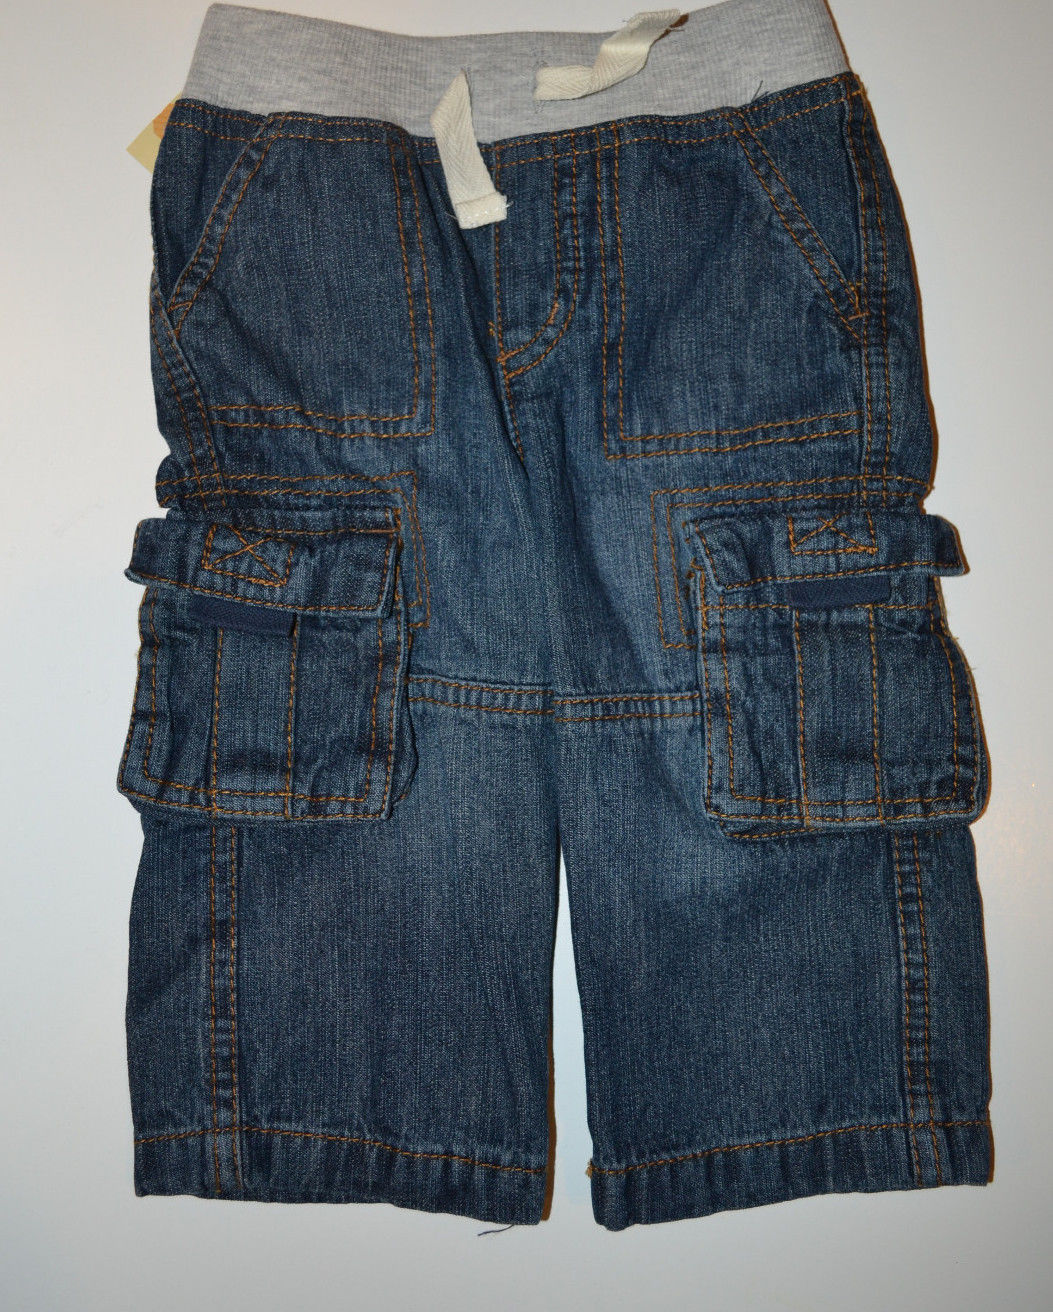 Primary image for BOYS INFANT CHEROKEE JEANS SIZE 12M     20-23 LBS       NWT NEW